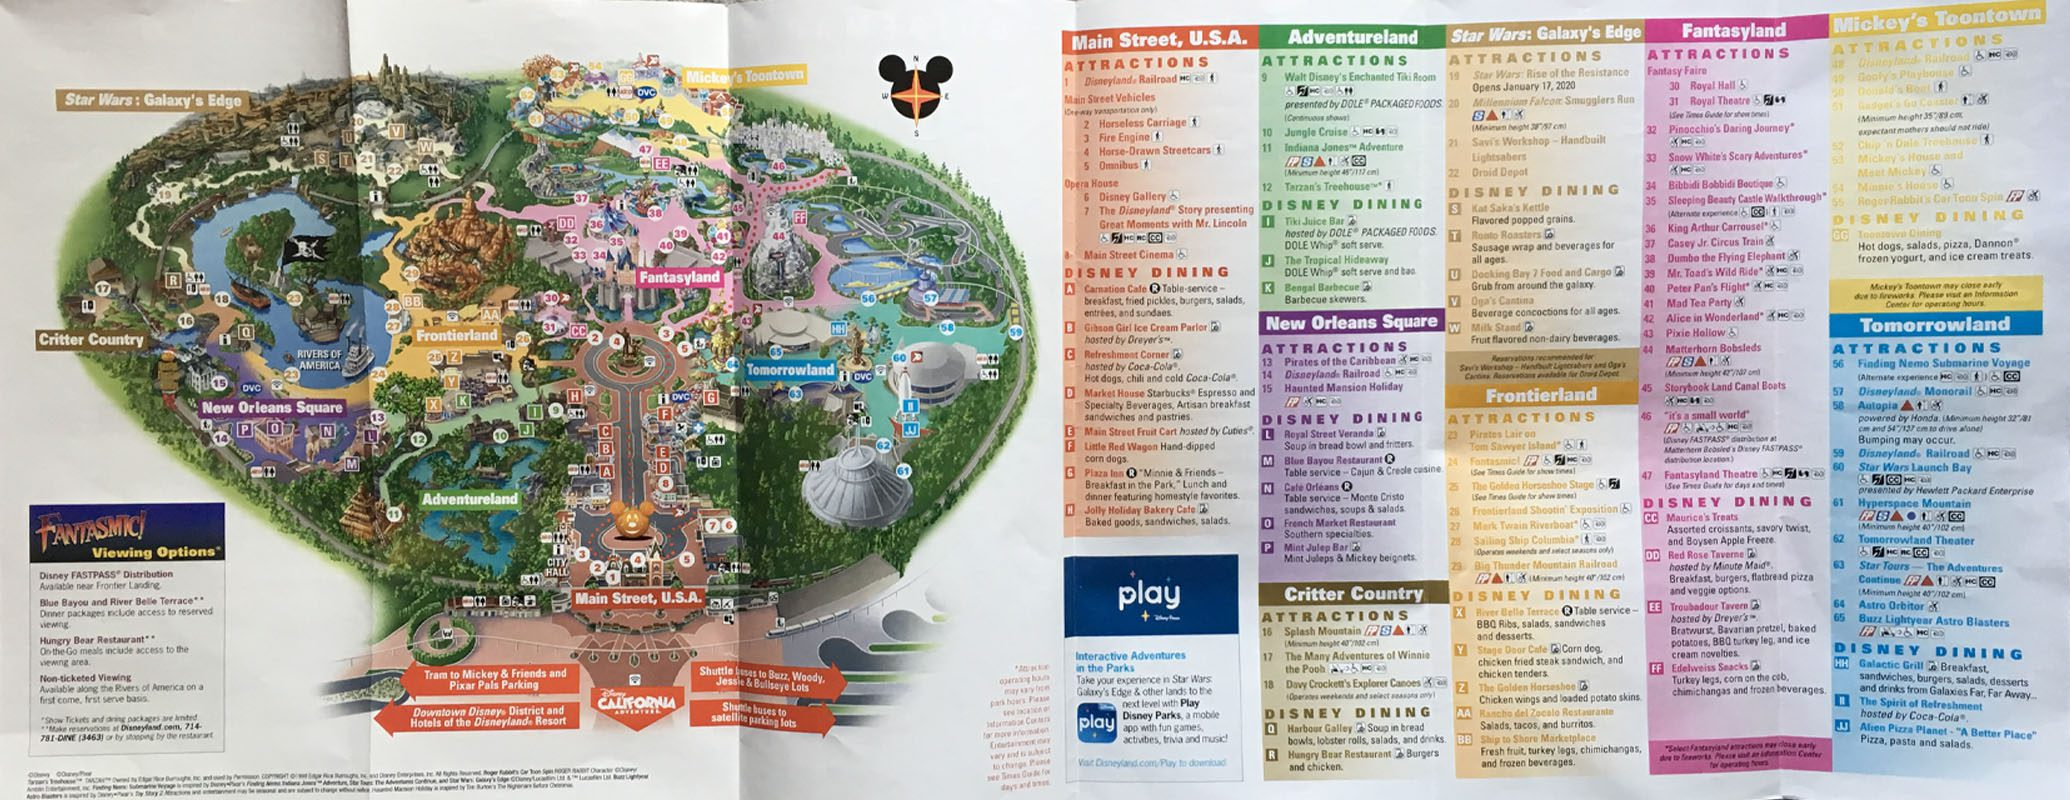 Disneyland Halloween Time Food Map 2020 2019 Halloween Time Disneyland Park Map and Food Guide